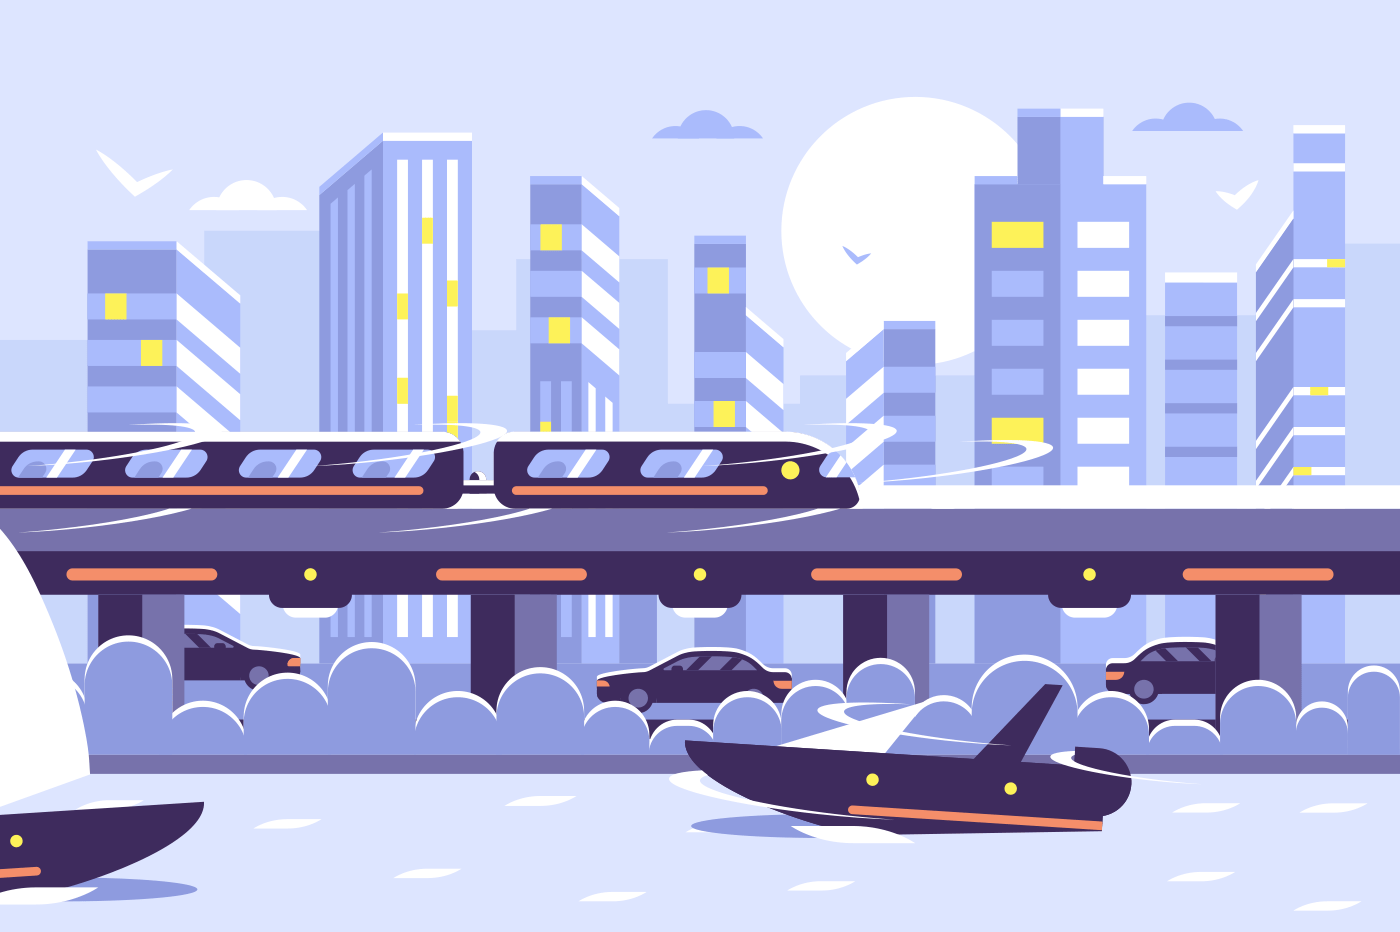 Futuristic subway train monorail over sunset cityscape. Electric train modern city skyscraper view. Flat. Vector illustration.